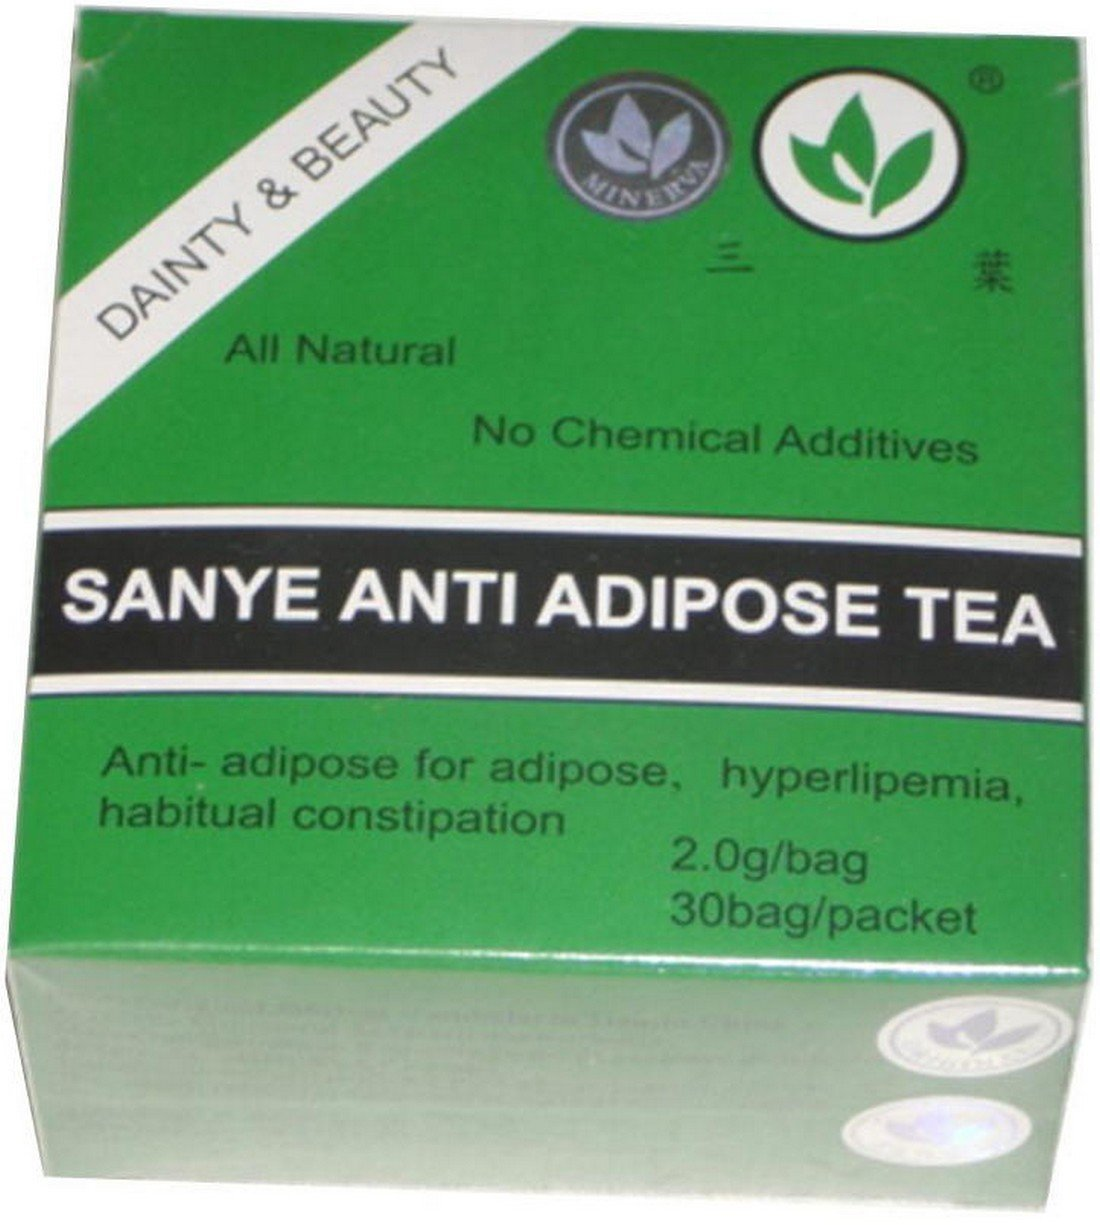 SANYE ANTI-ADIPOSE TEA & Detoxifying Laxative & Cleansing action - 30 tea bags!!!TOP PRODUCT